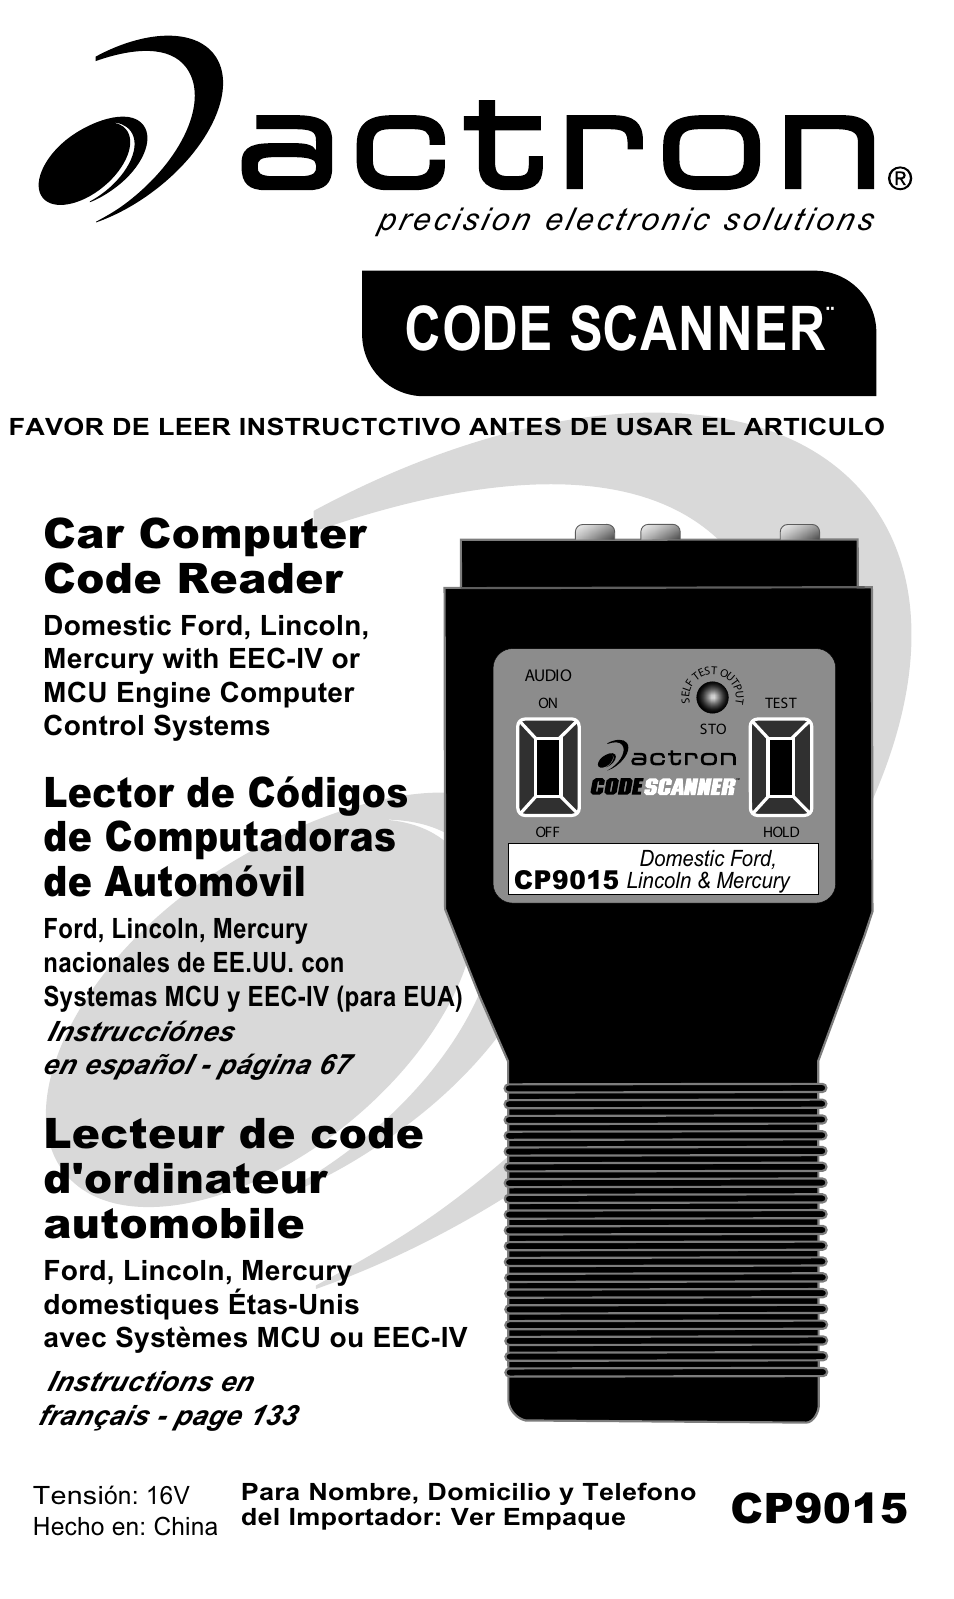 actron ford code scanner cp9015 user manual 66 pages original mode rh manualsdir com Actron Vehicle Codes Actron CP9125 Code List Booklet